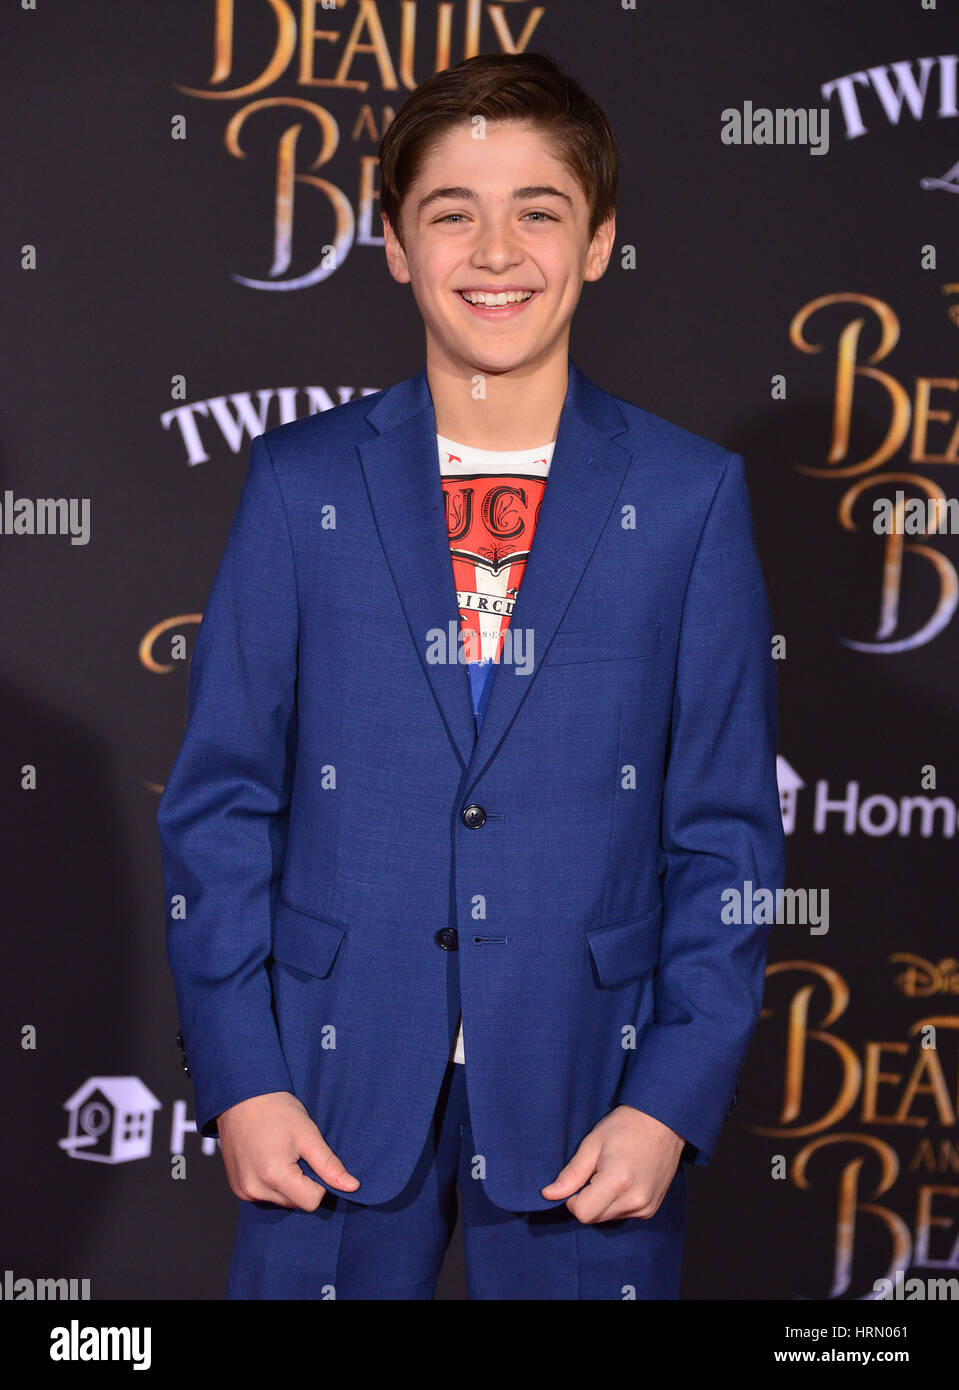 Los Angeles, USA. 02nd Mar, 2017. Peyton Elizabeth Lee at the  Disney s 'Beauty and the Beast premiere at El - Stock Image